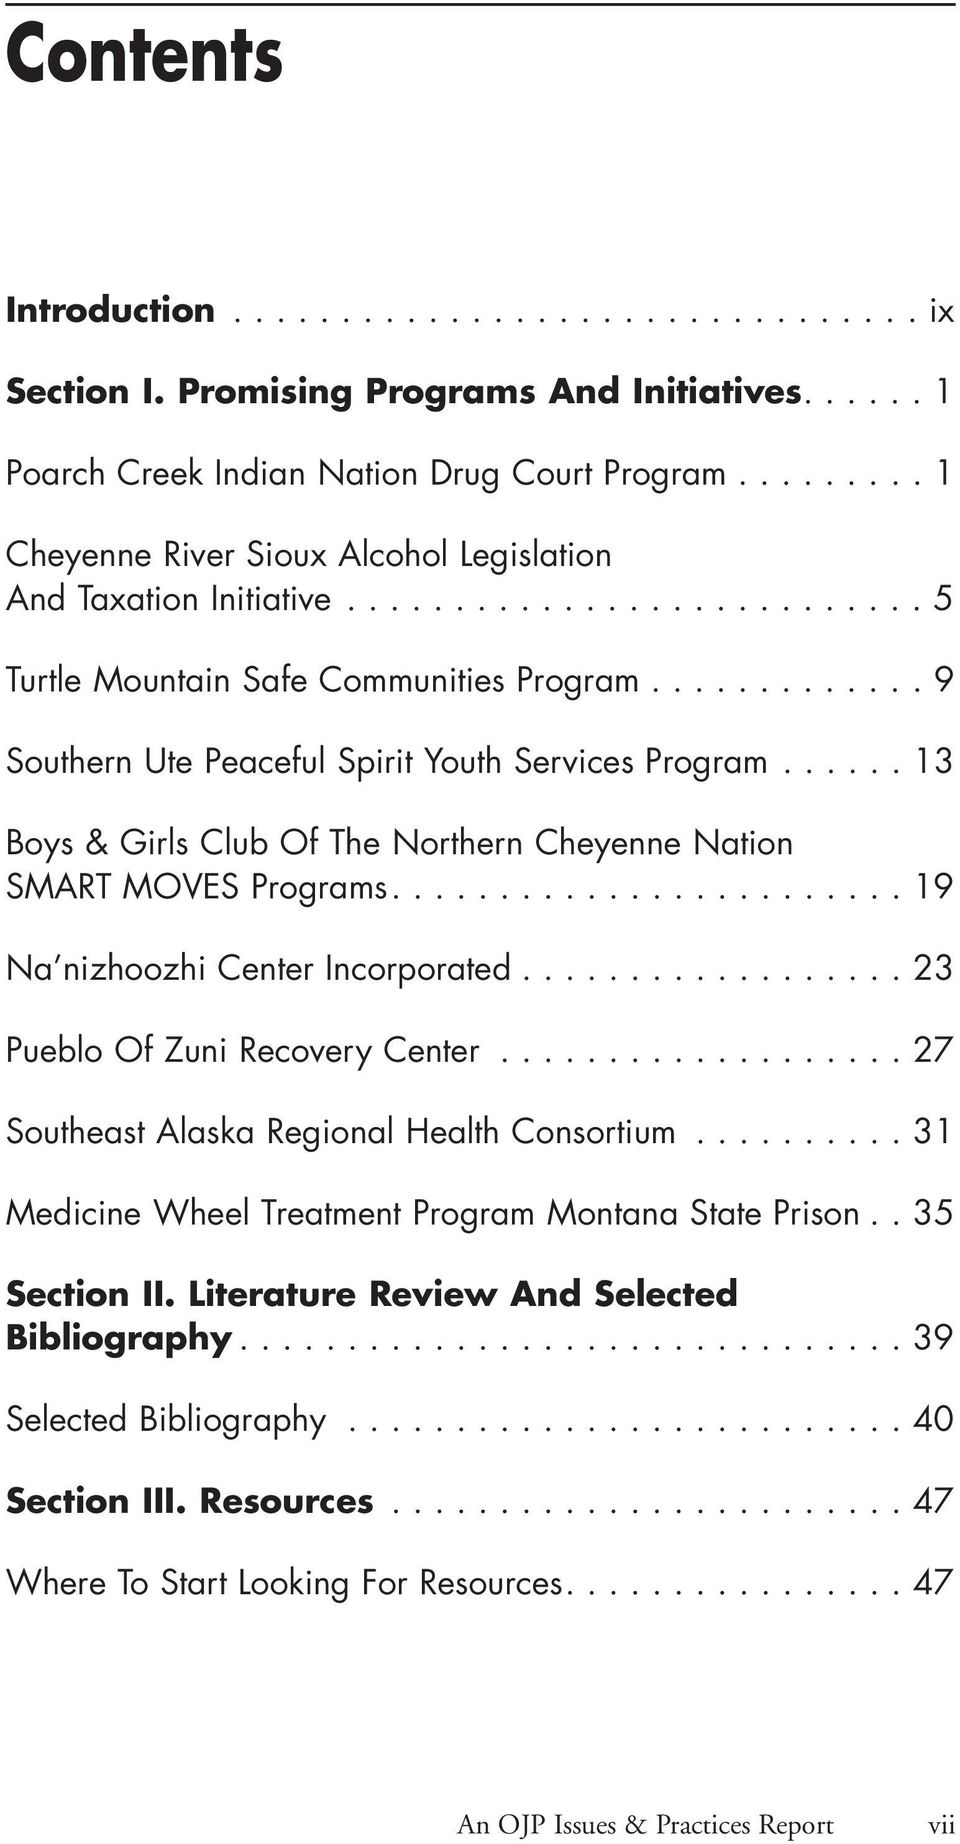 ............ 9 Southern Ute Peaceful Spirit Youth Services Program...... 13 Boys & Girls Club Of The Northern Cheyenne Nation SMART MOVES Programs........................ 19 Na nizhoozhi Center Incorporated.